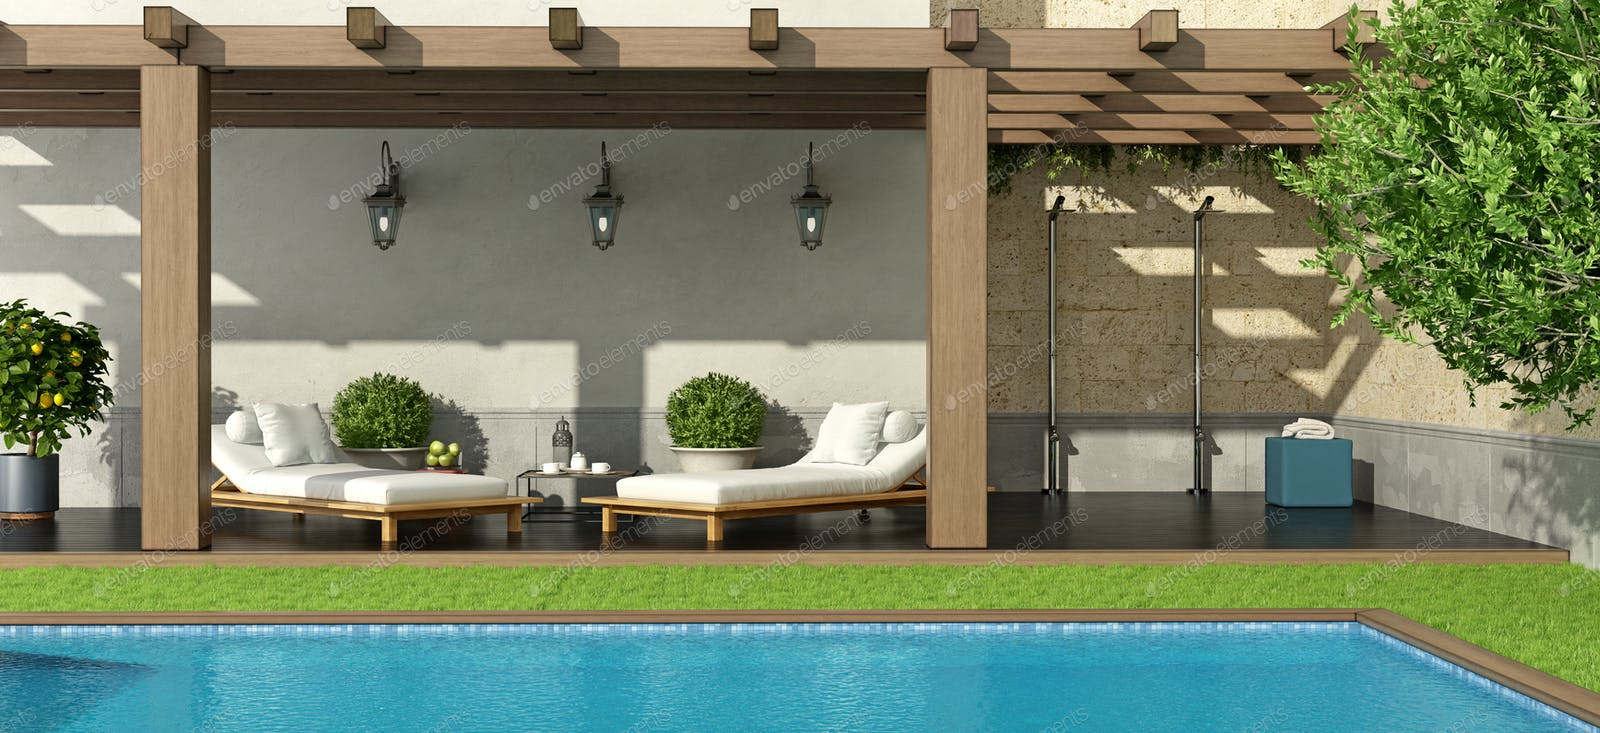 Garden With Swimming Pool garden with pergola and swimming pool photo by archideaphoto on envato  elements